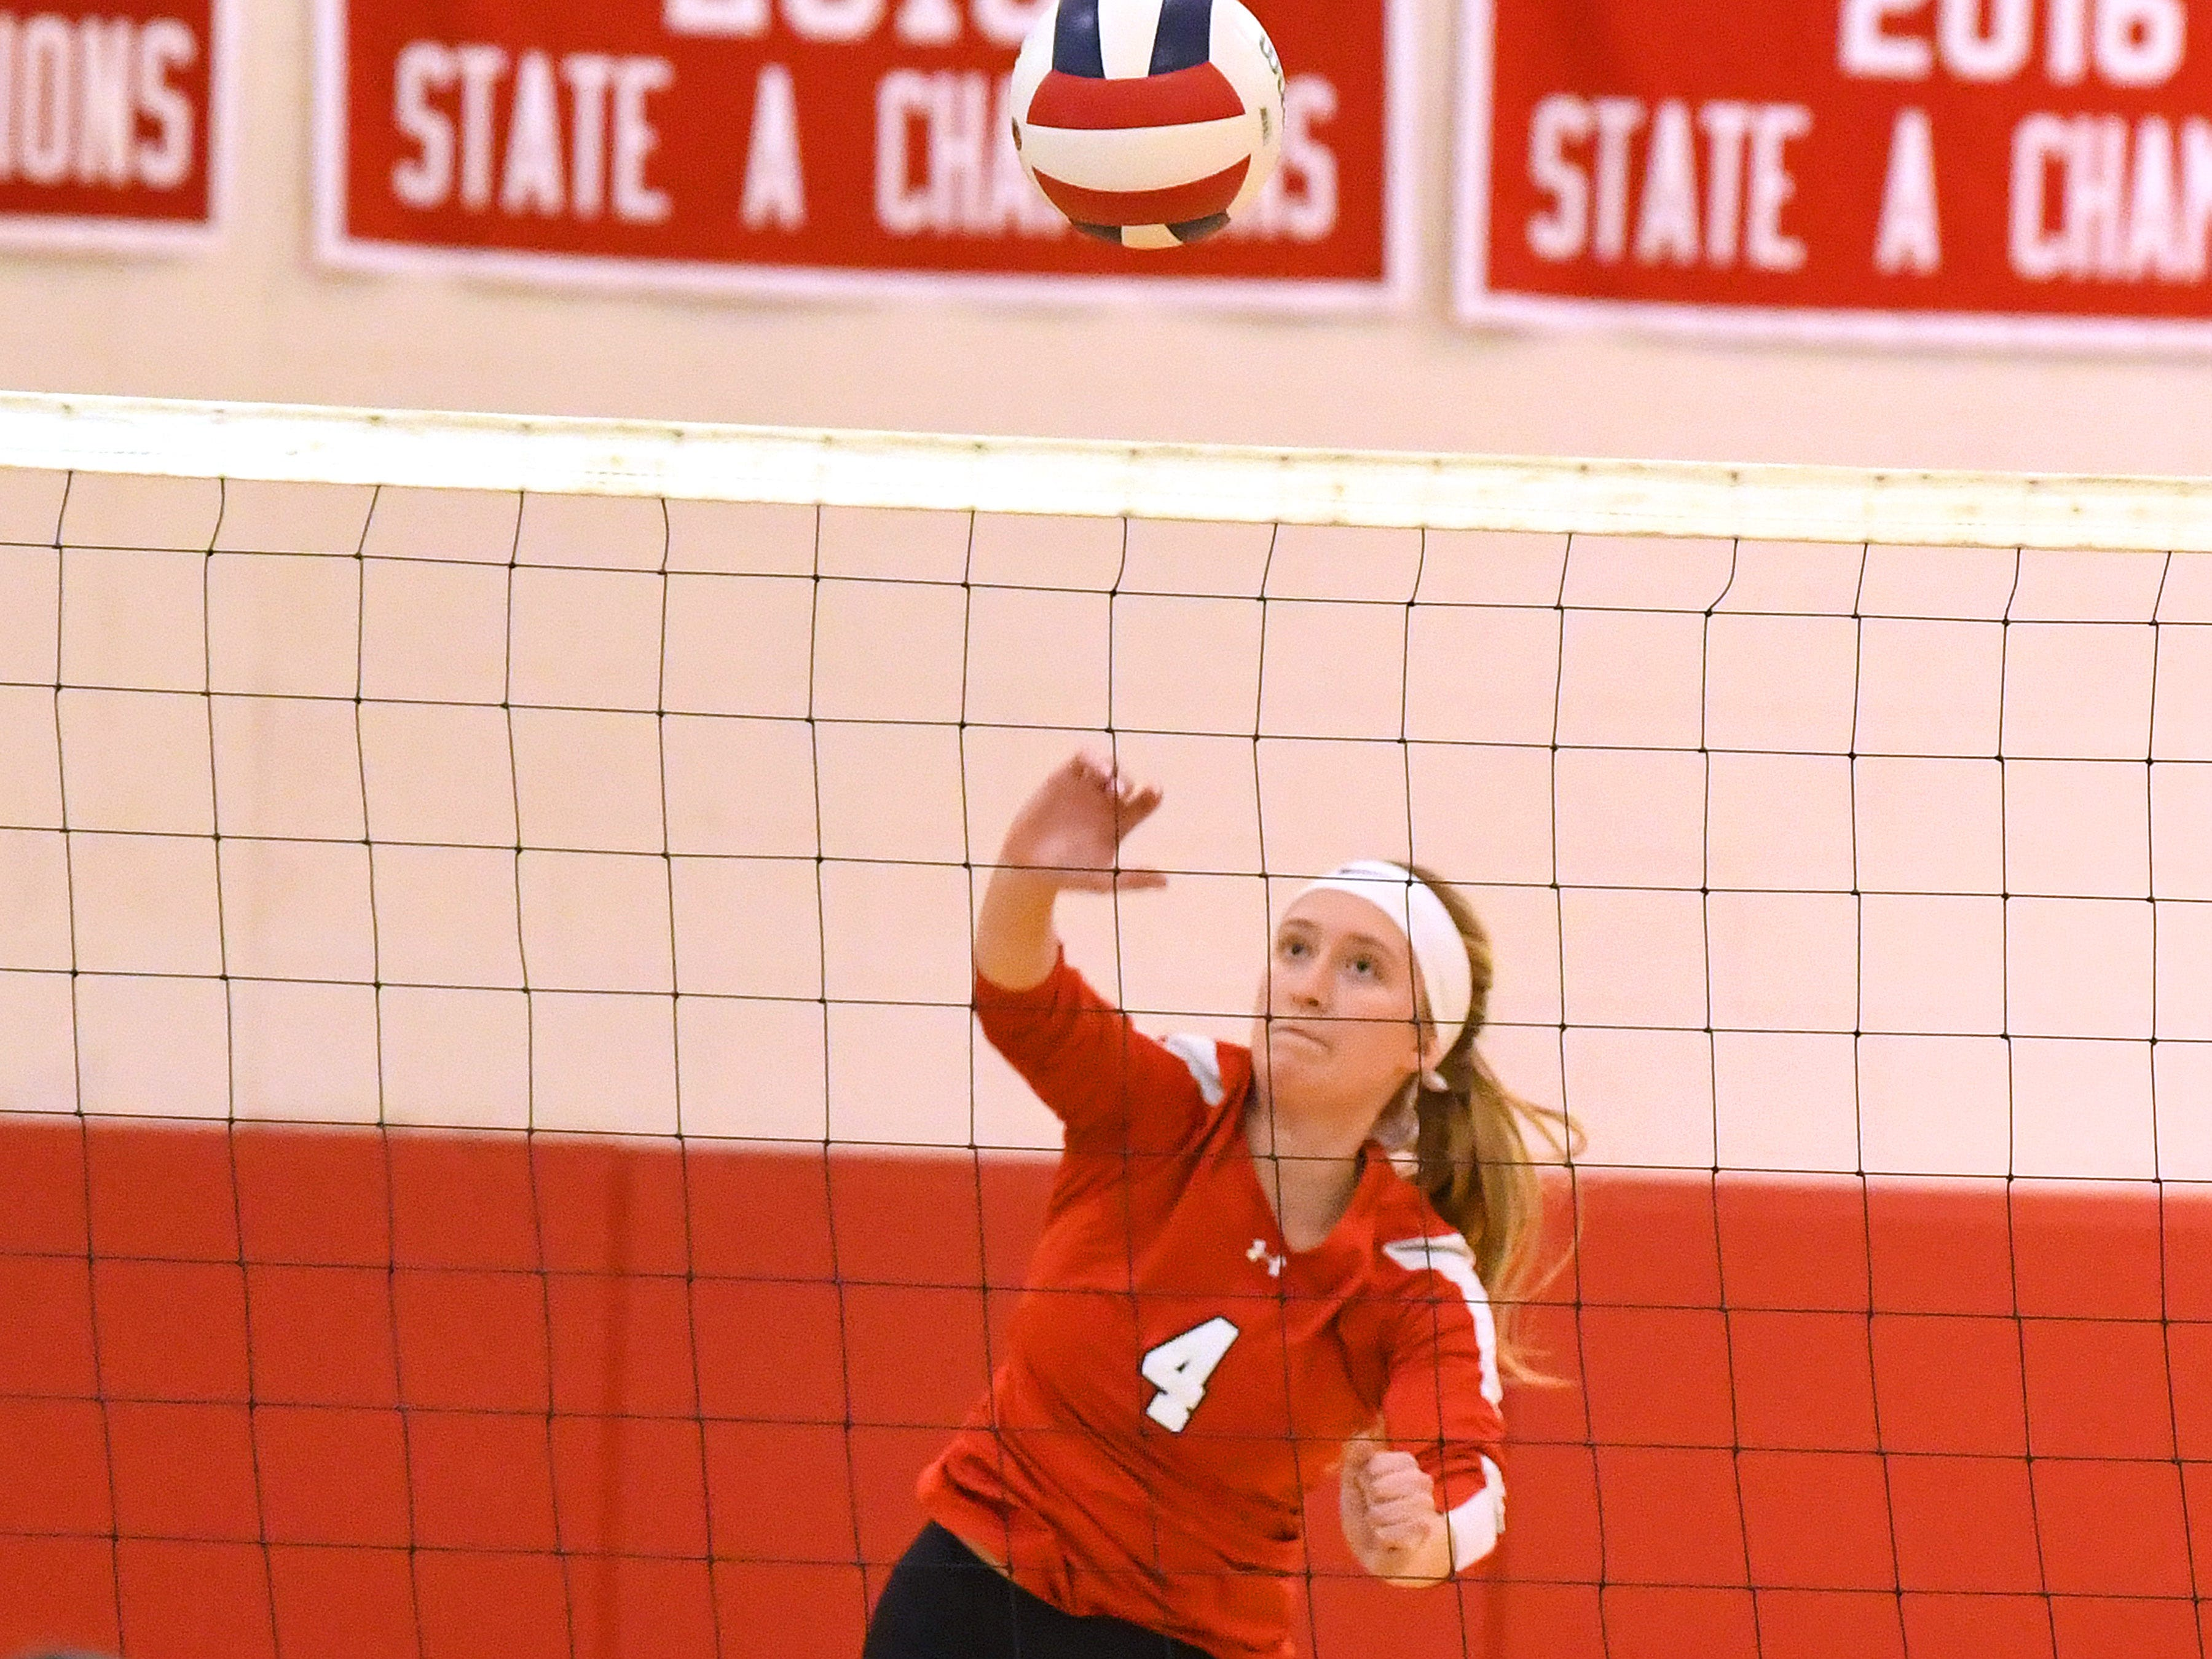 Riverheads' Emma Tomlinson spikes the ball during the Region 1B volleyball championship played in Greenville on Wednesday, Nov. 7, 2018.